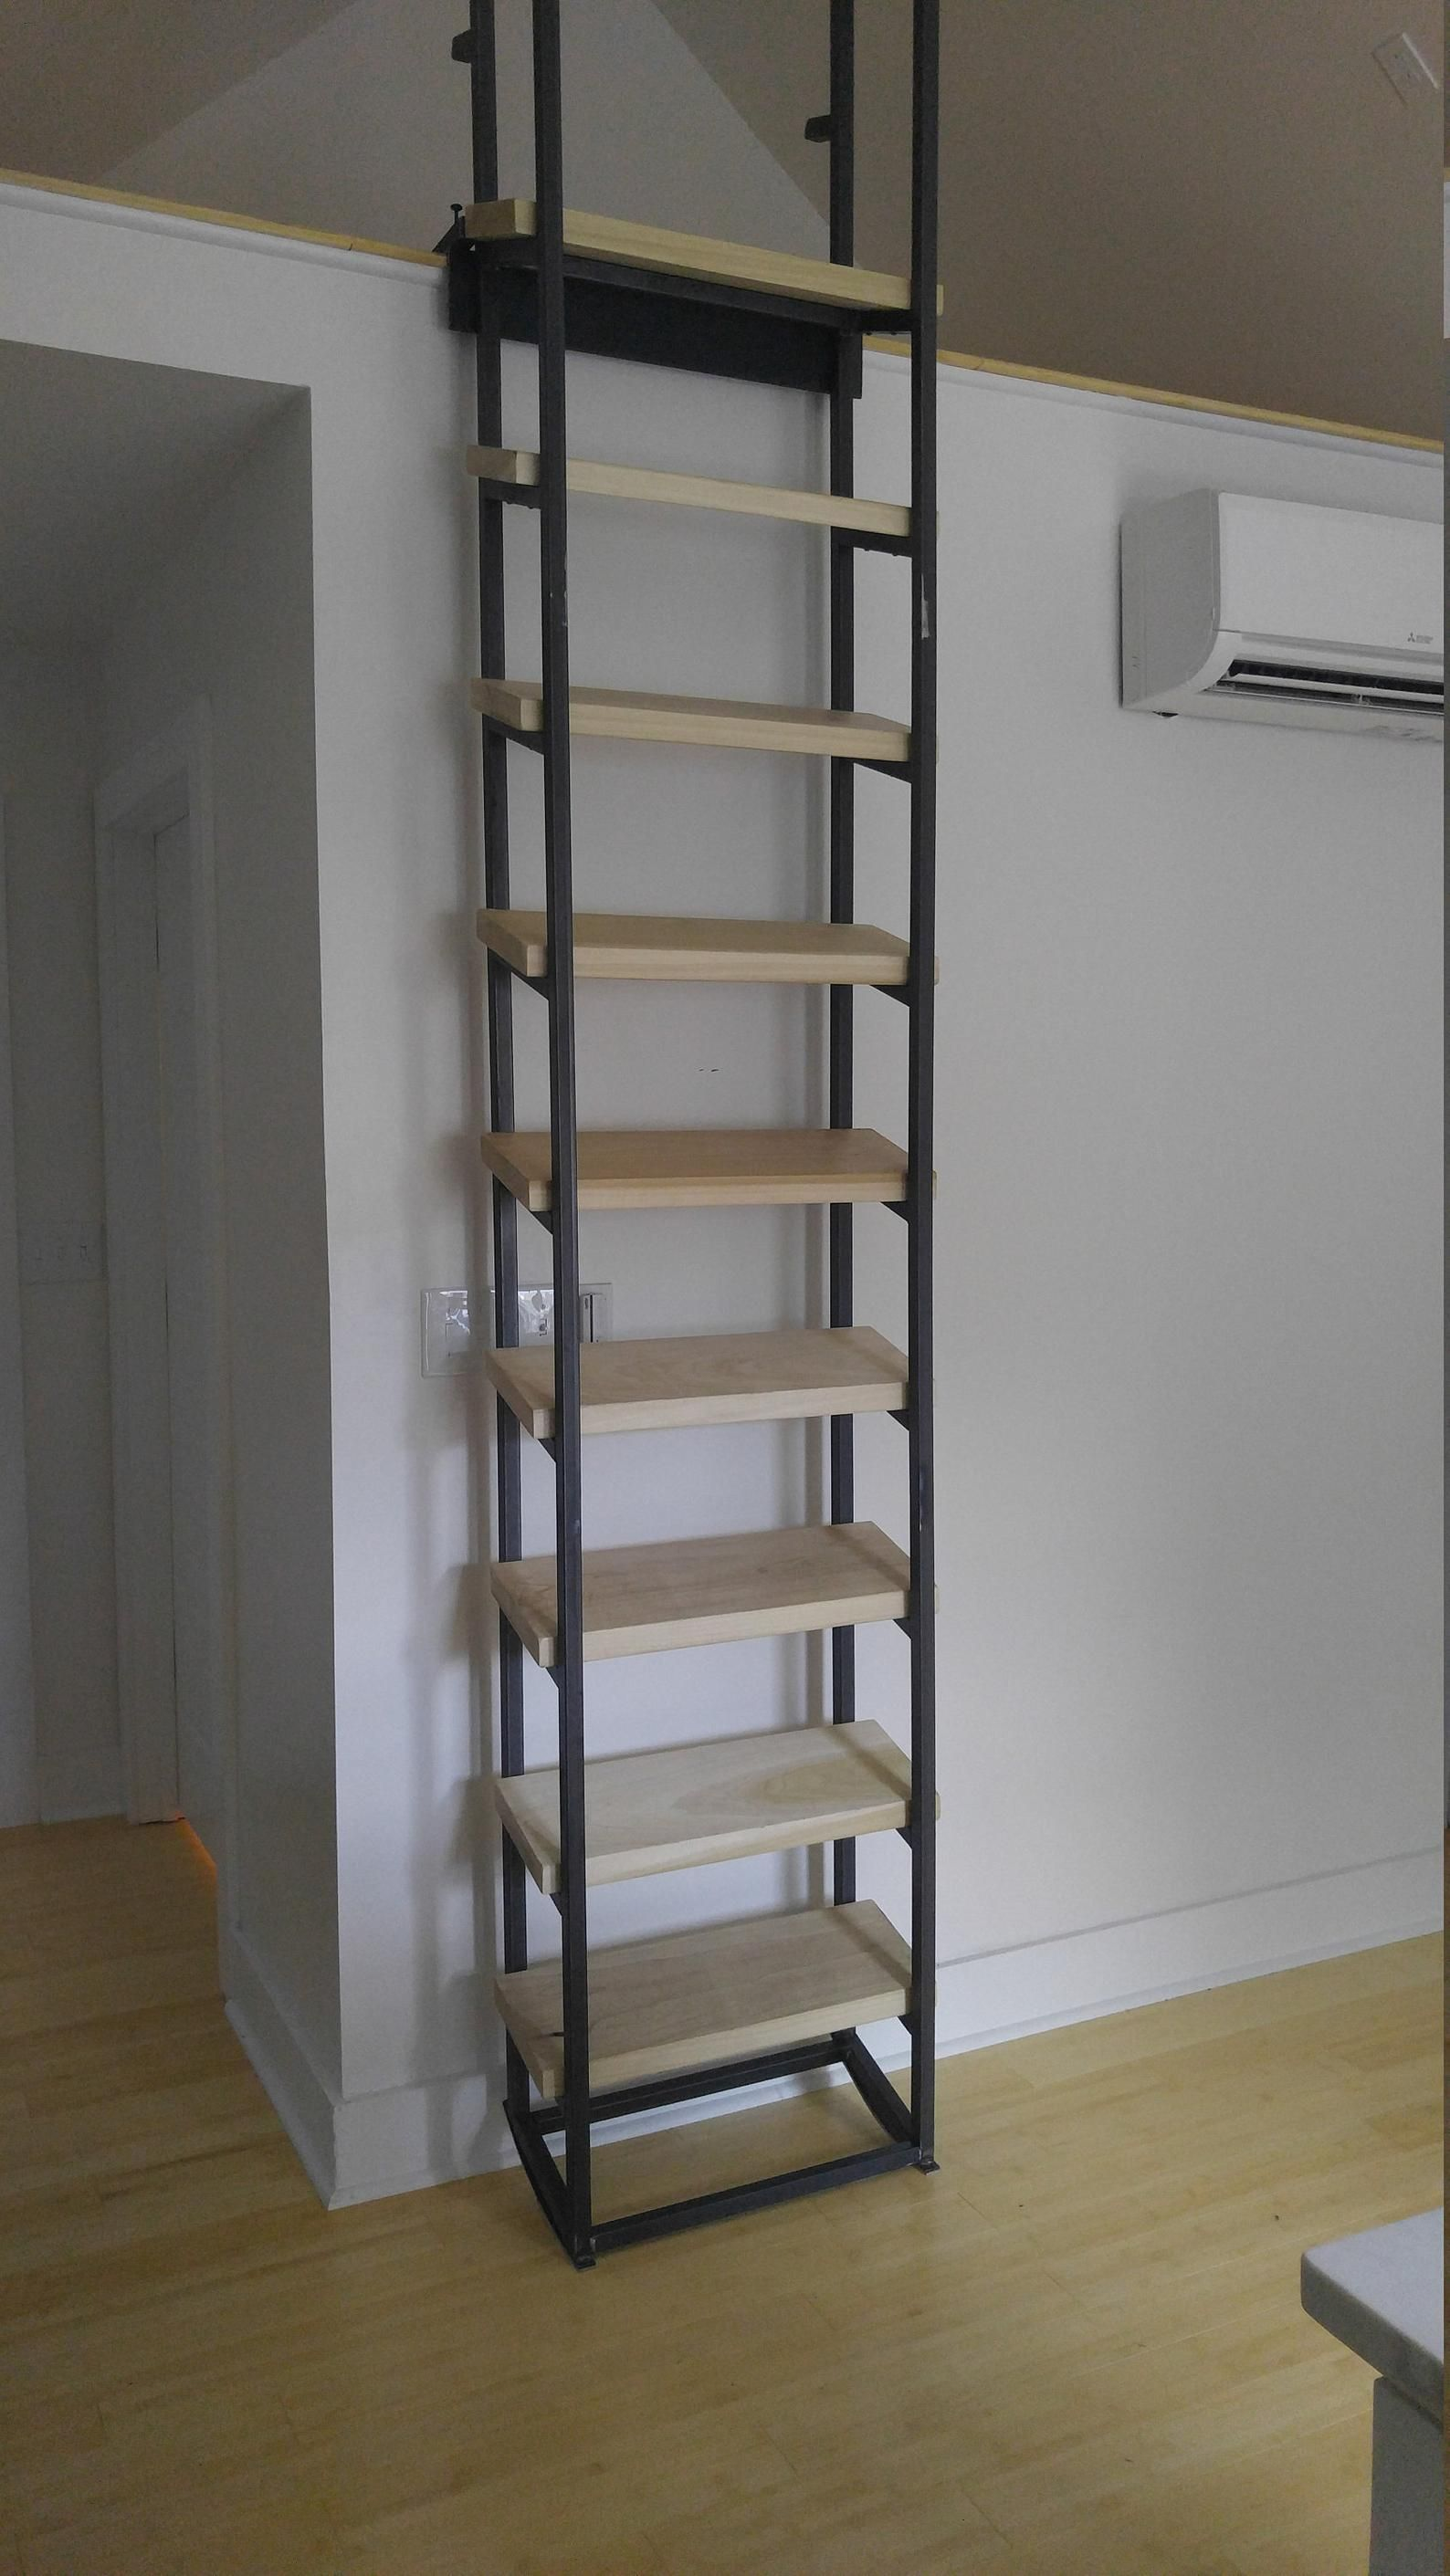 9 Foot Retractable Loft Ladder Free Shipping To Your Door In 2020 Loft Ladder Stairs Design Loft Interiors